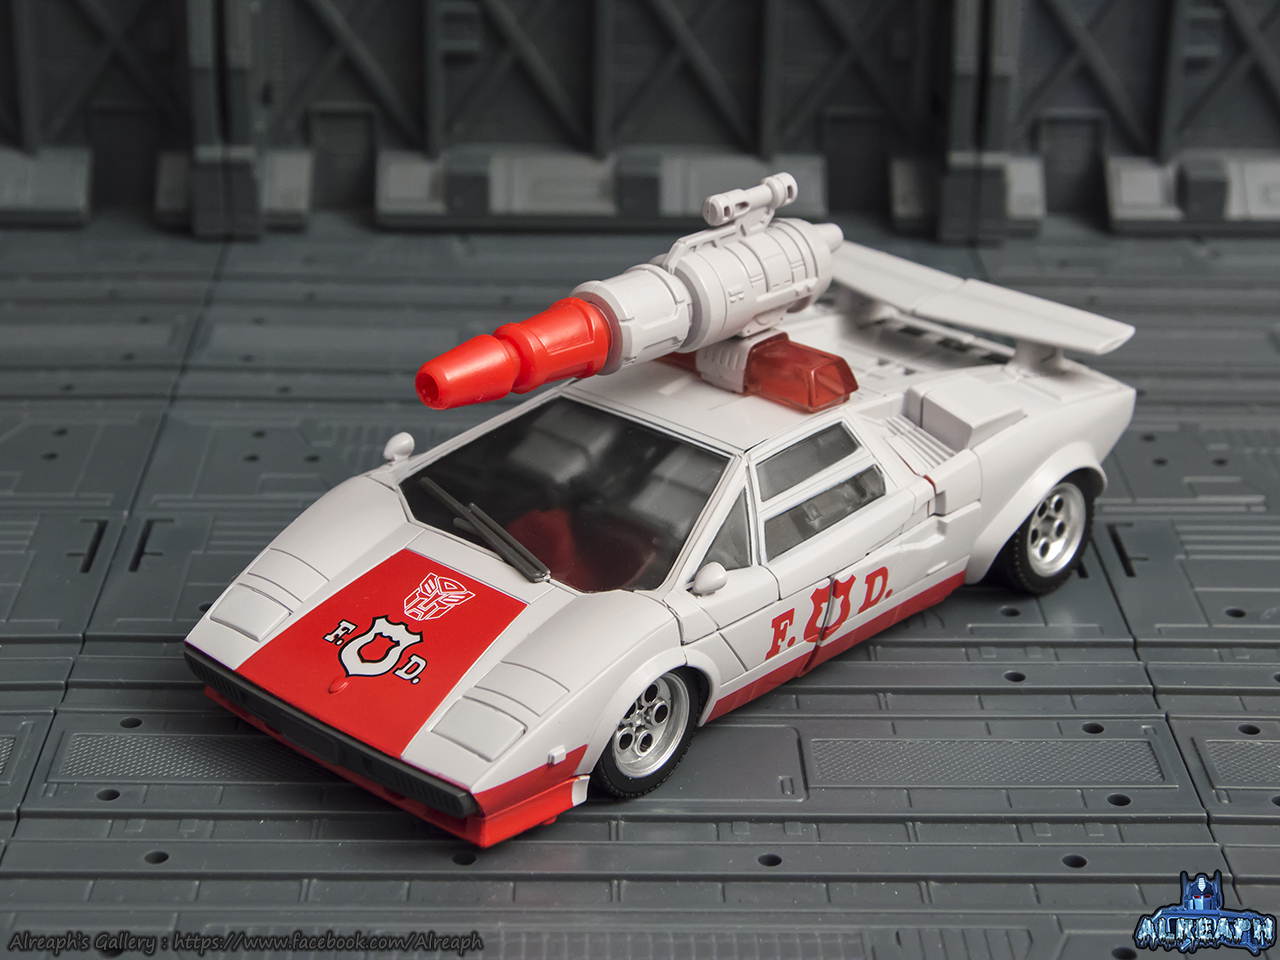 [Masterpiece] MP-14 Red Alert/Feu d'Alerte - Page 2 KM0Vqhgb